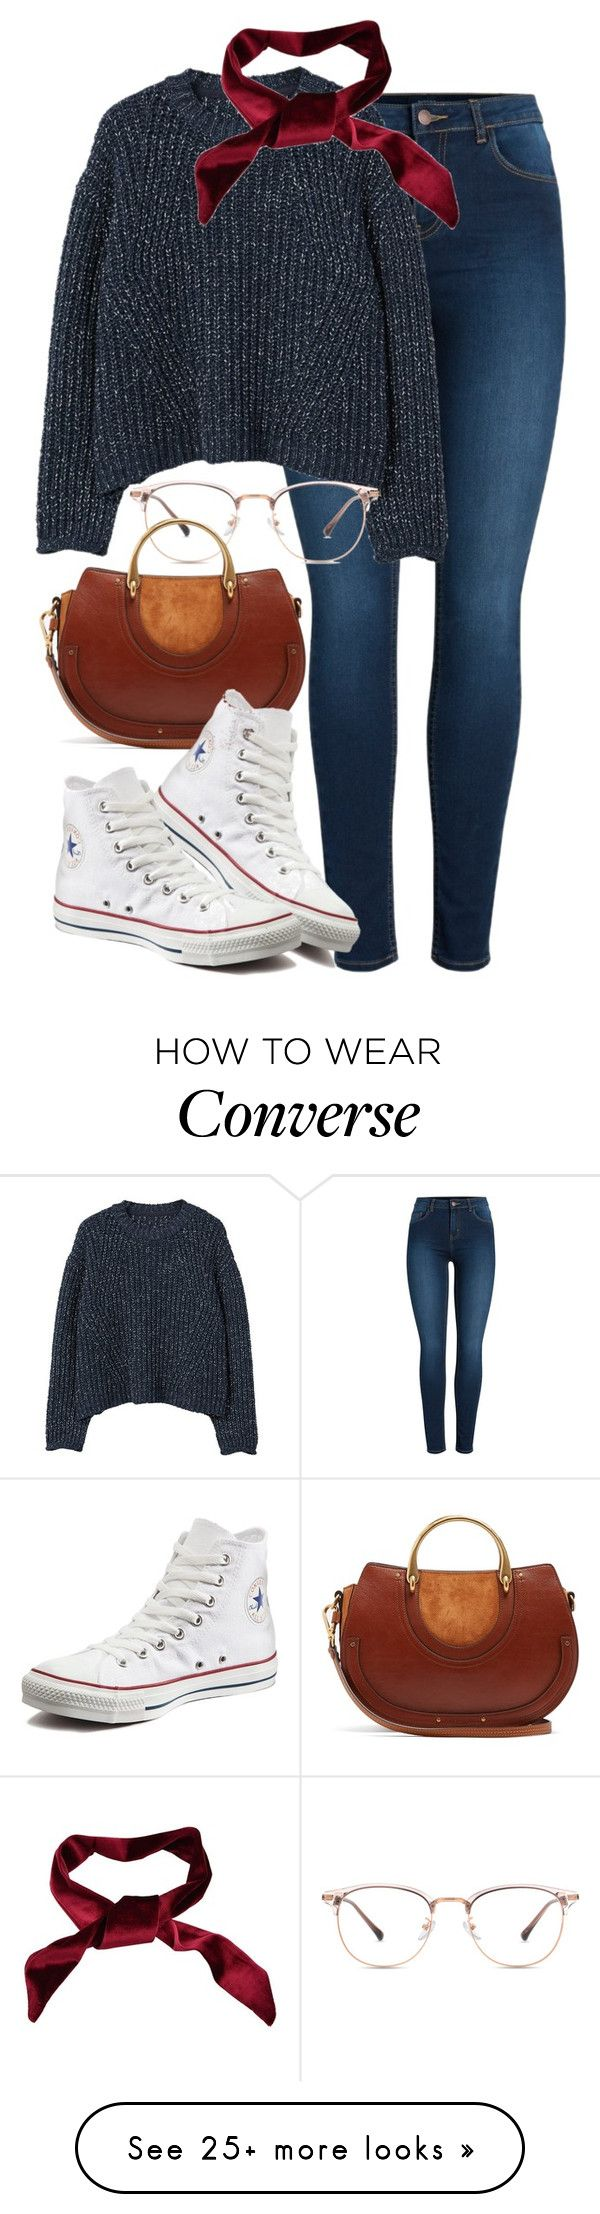 """""""Chloe x Converse"""" by muddychip-797 on Polyvore featuring Pieces, MANGO, Chloé, Converse, casual, converse, chloe, brunch and fashionset"""